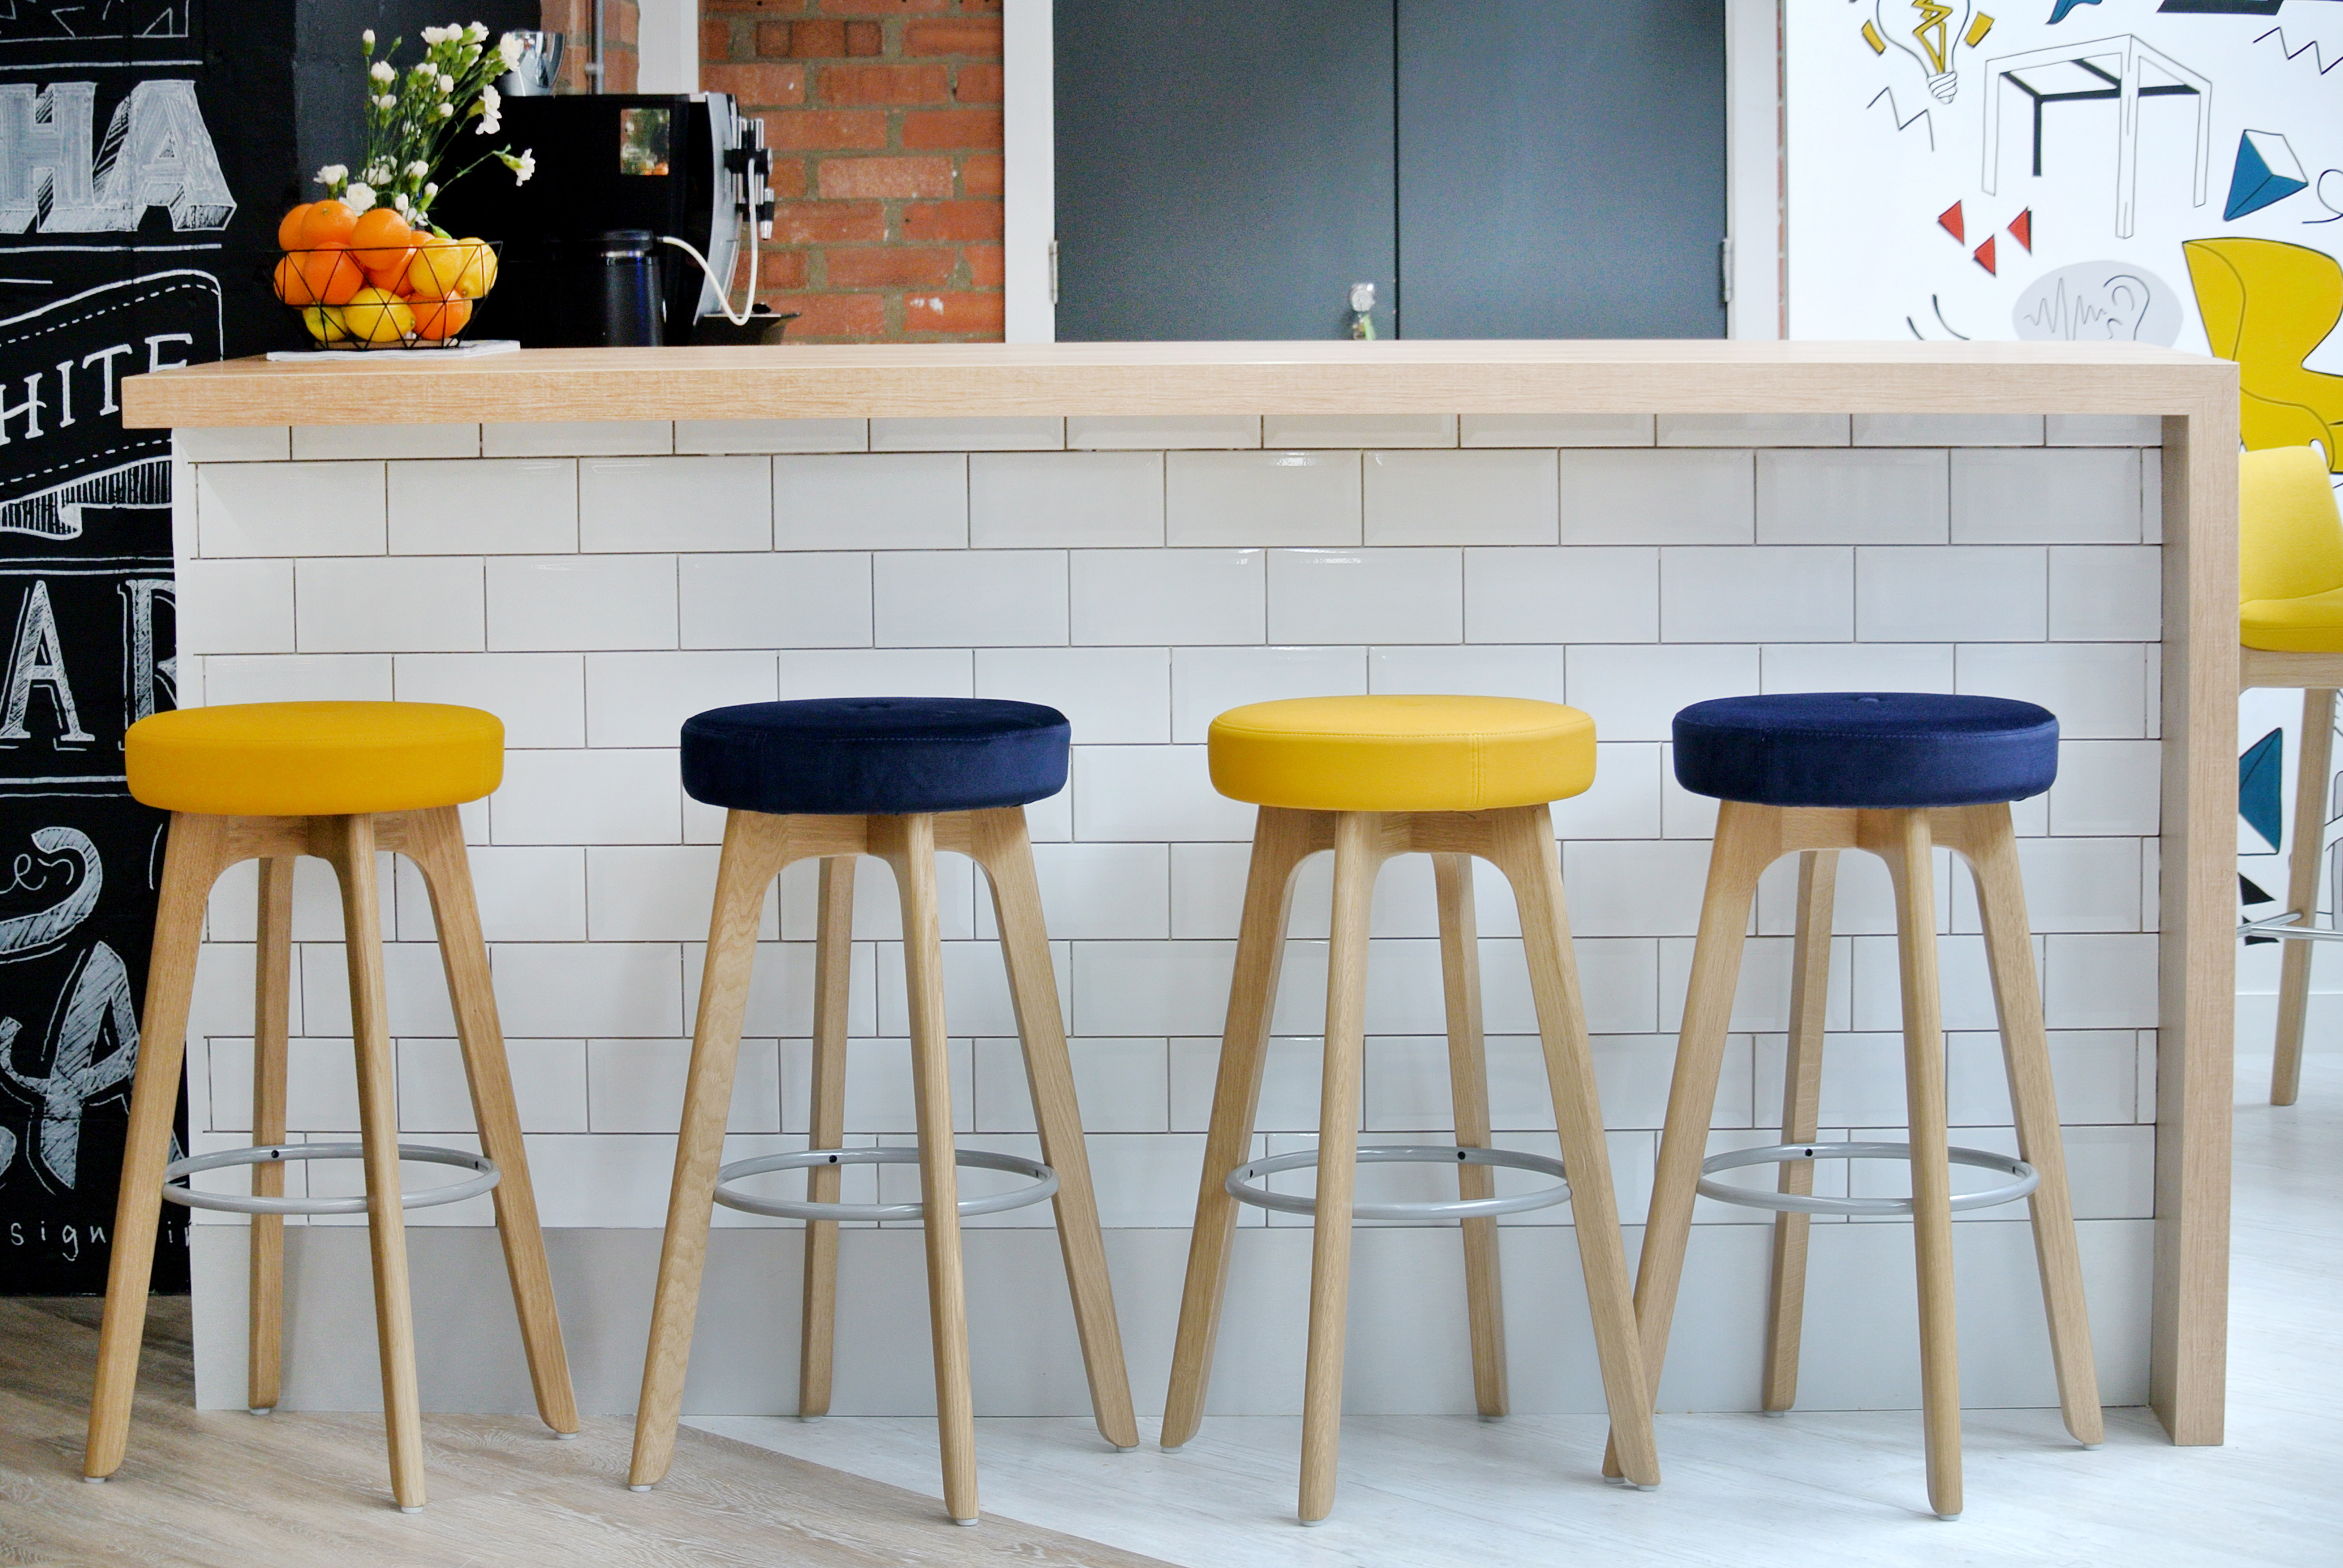 Top Rated in Barstools & Helpful Customer Reviews - Amazon.com